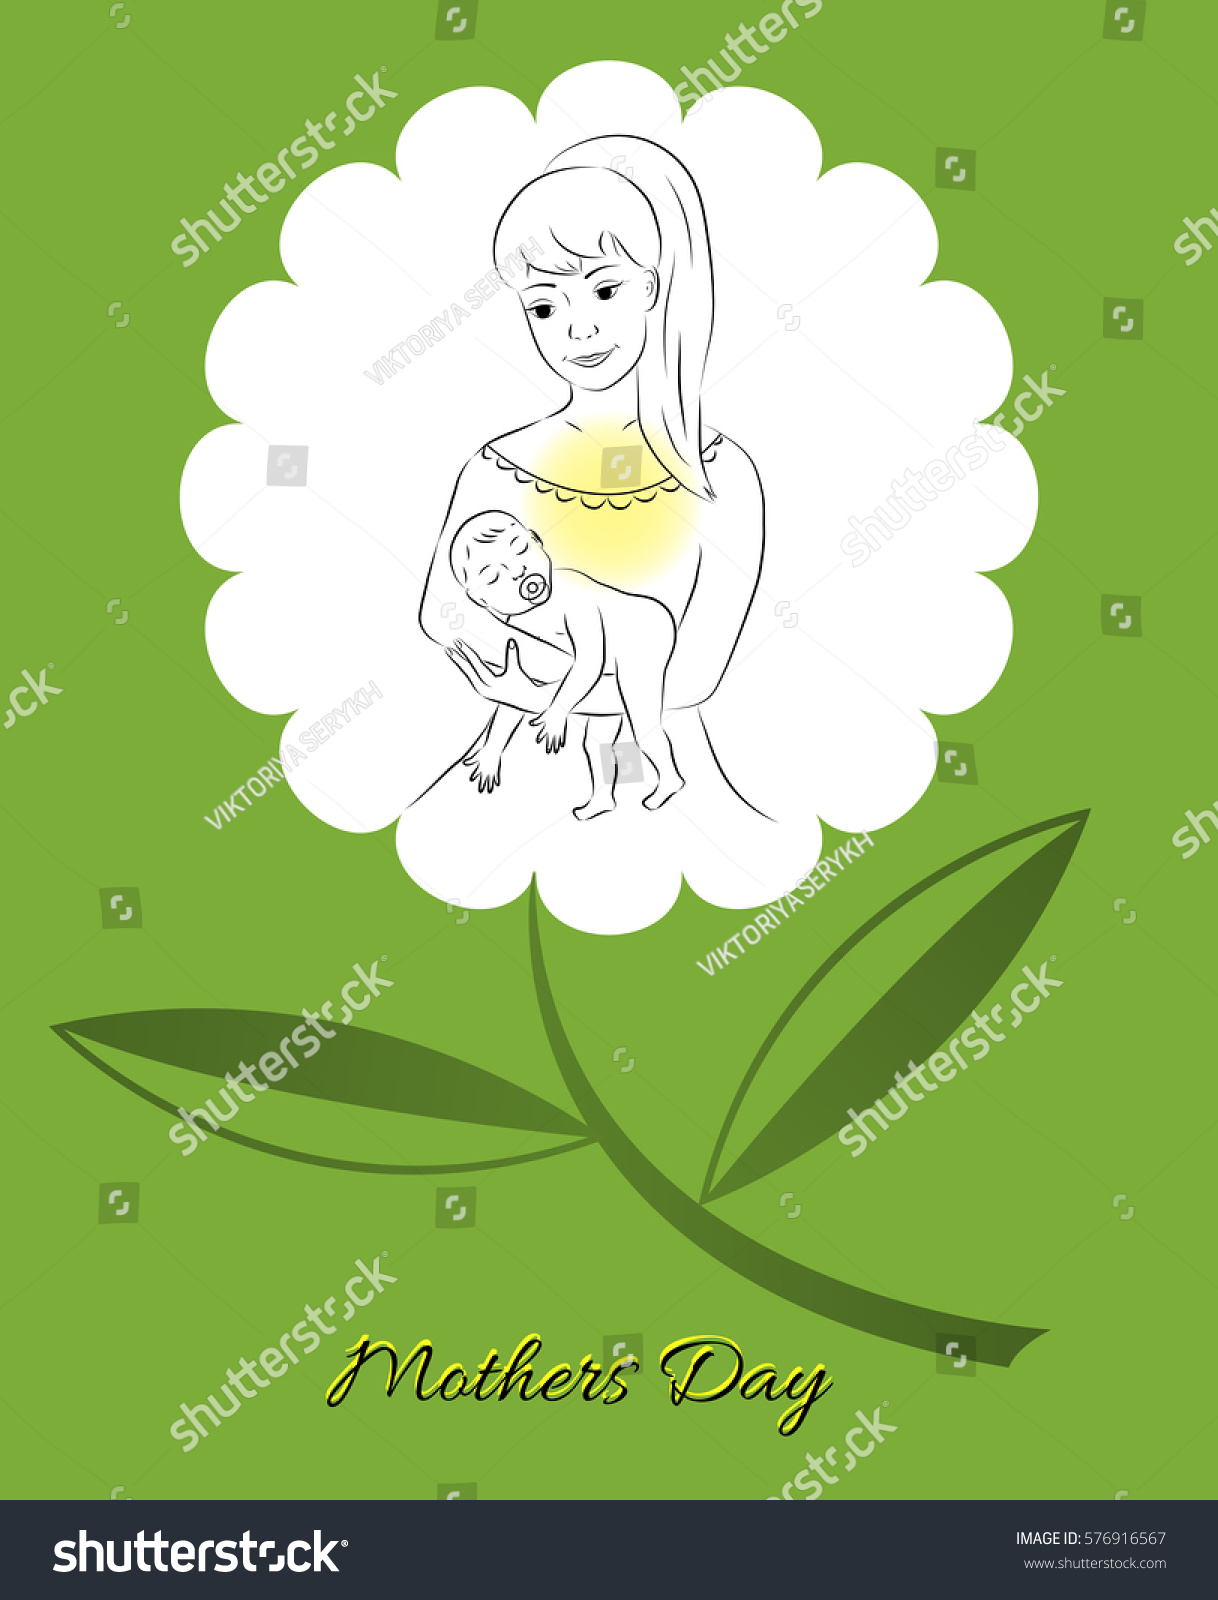 Postcard Mothers Day Greetings Mom Congratulations